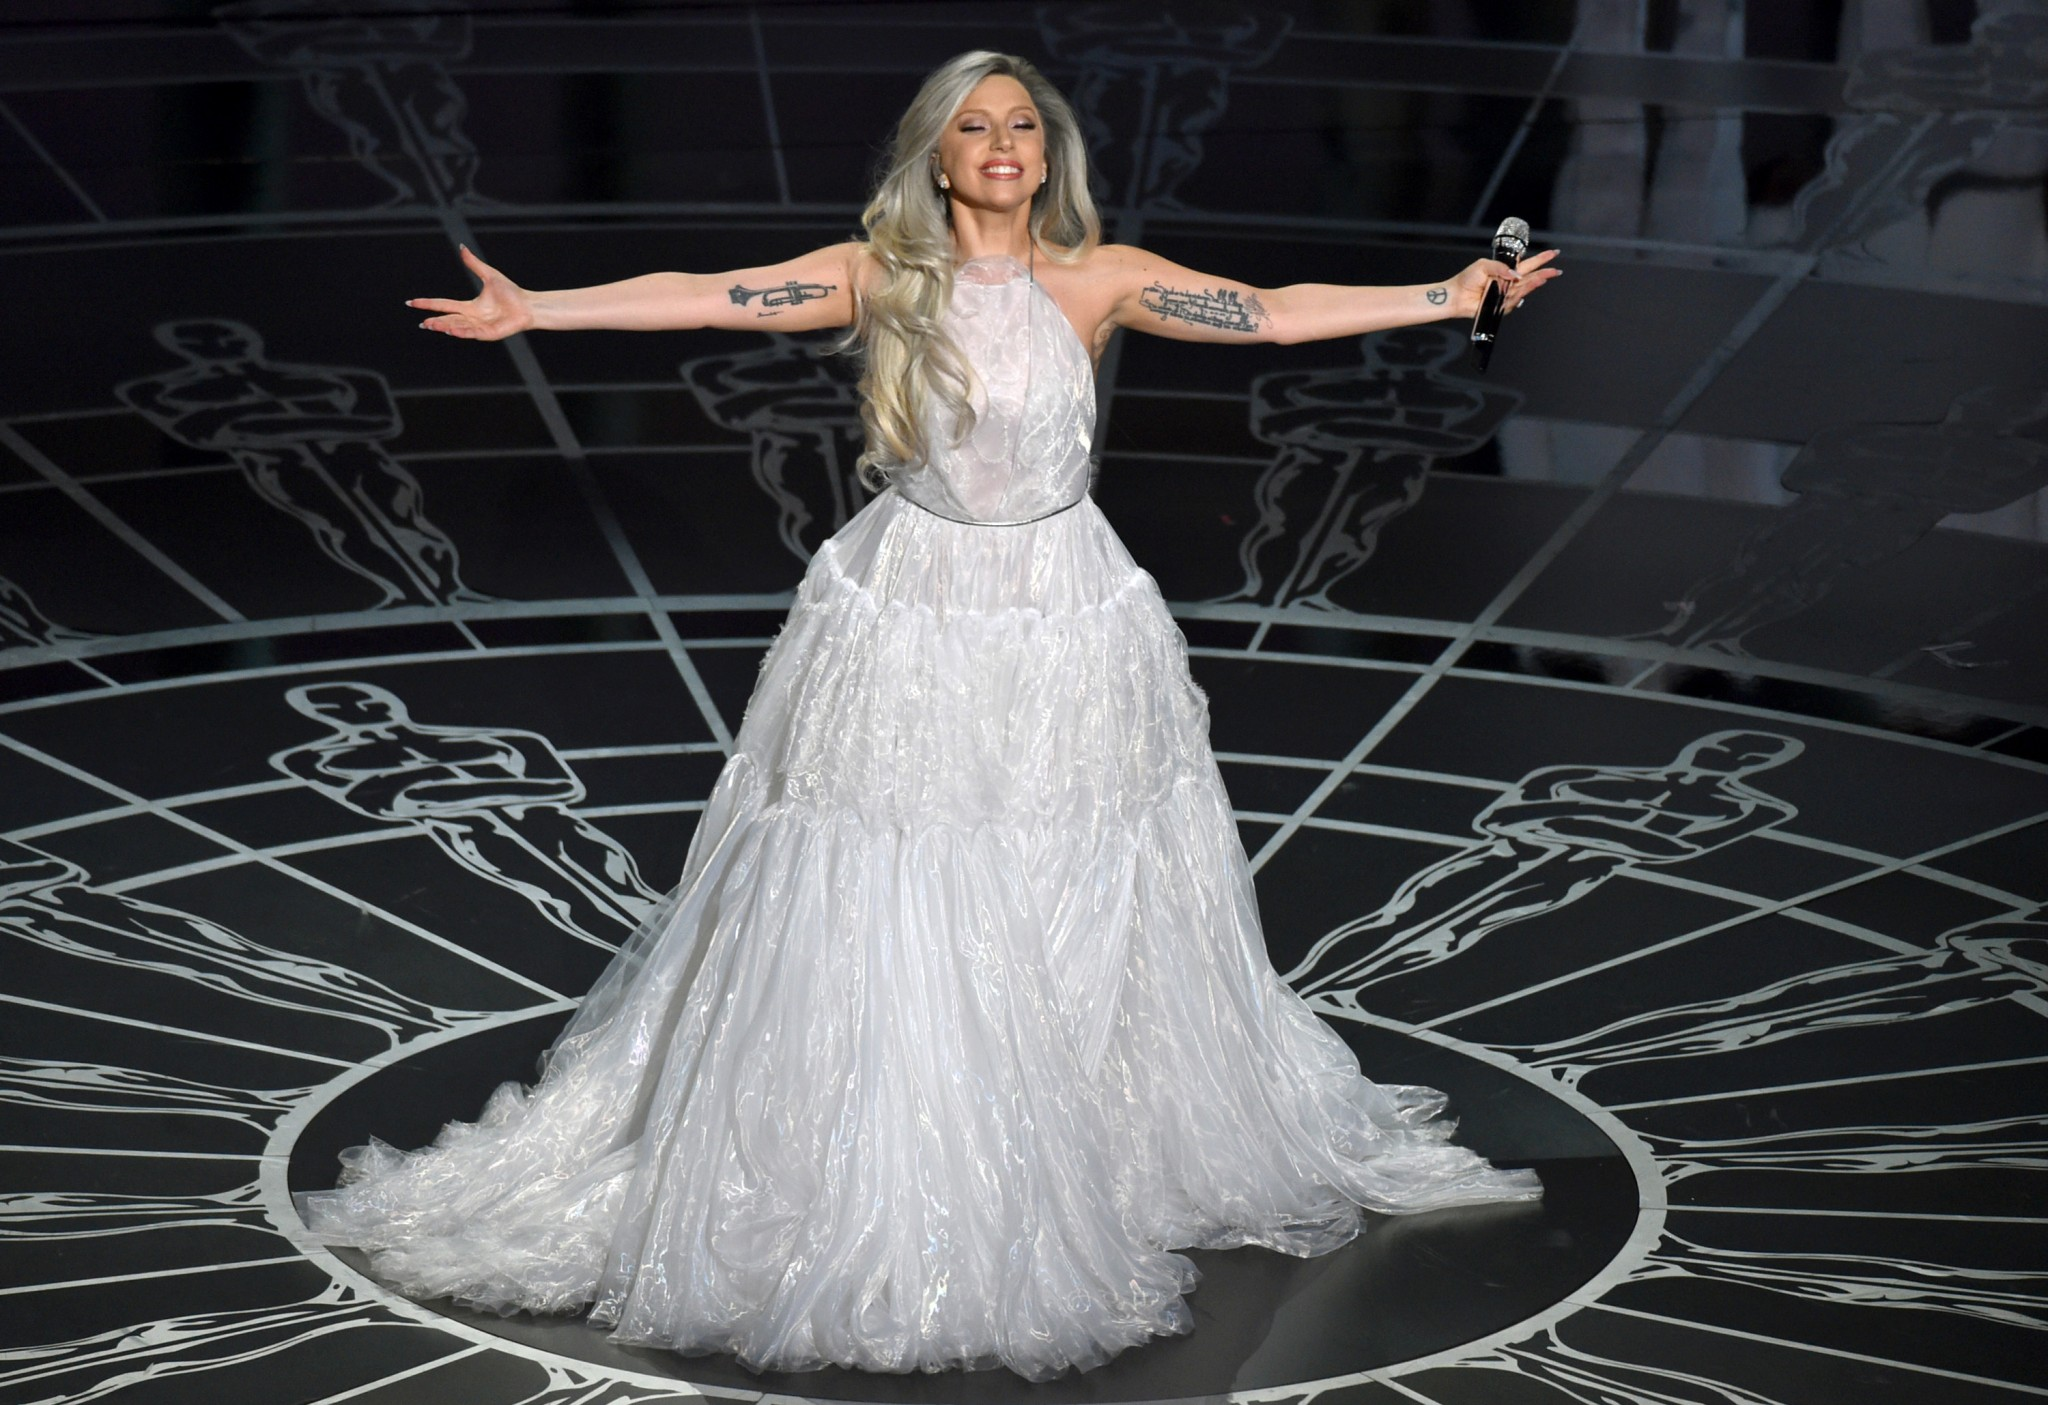 Lady Gaga performs on stage at the Oscars on Sunday, Feb. 22, 2015, at the Dolby Theatre in Los Angeles. (Photo by John Shearer/Invision/AP)